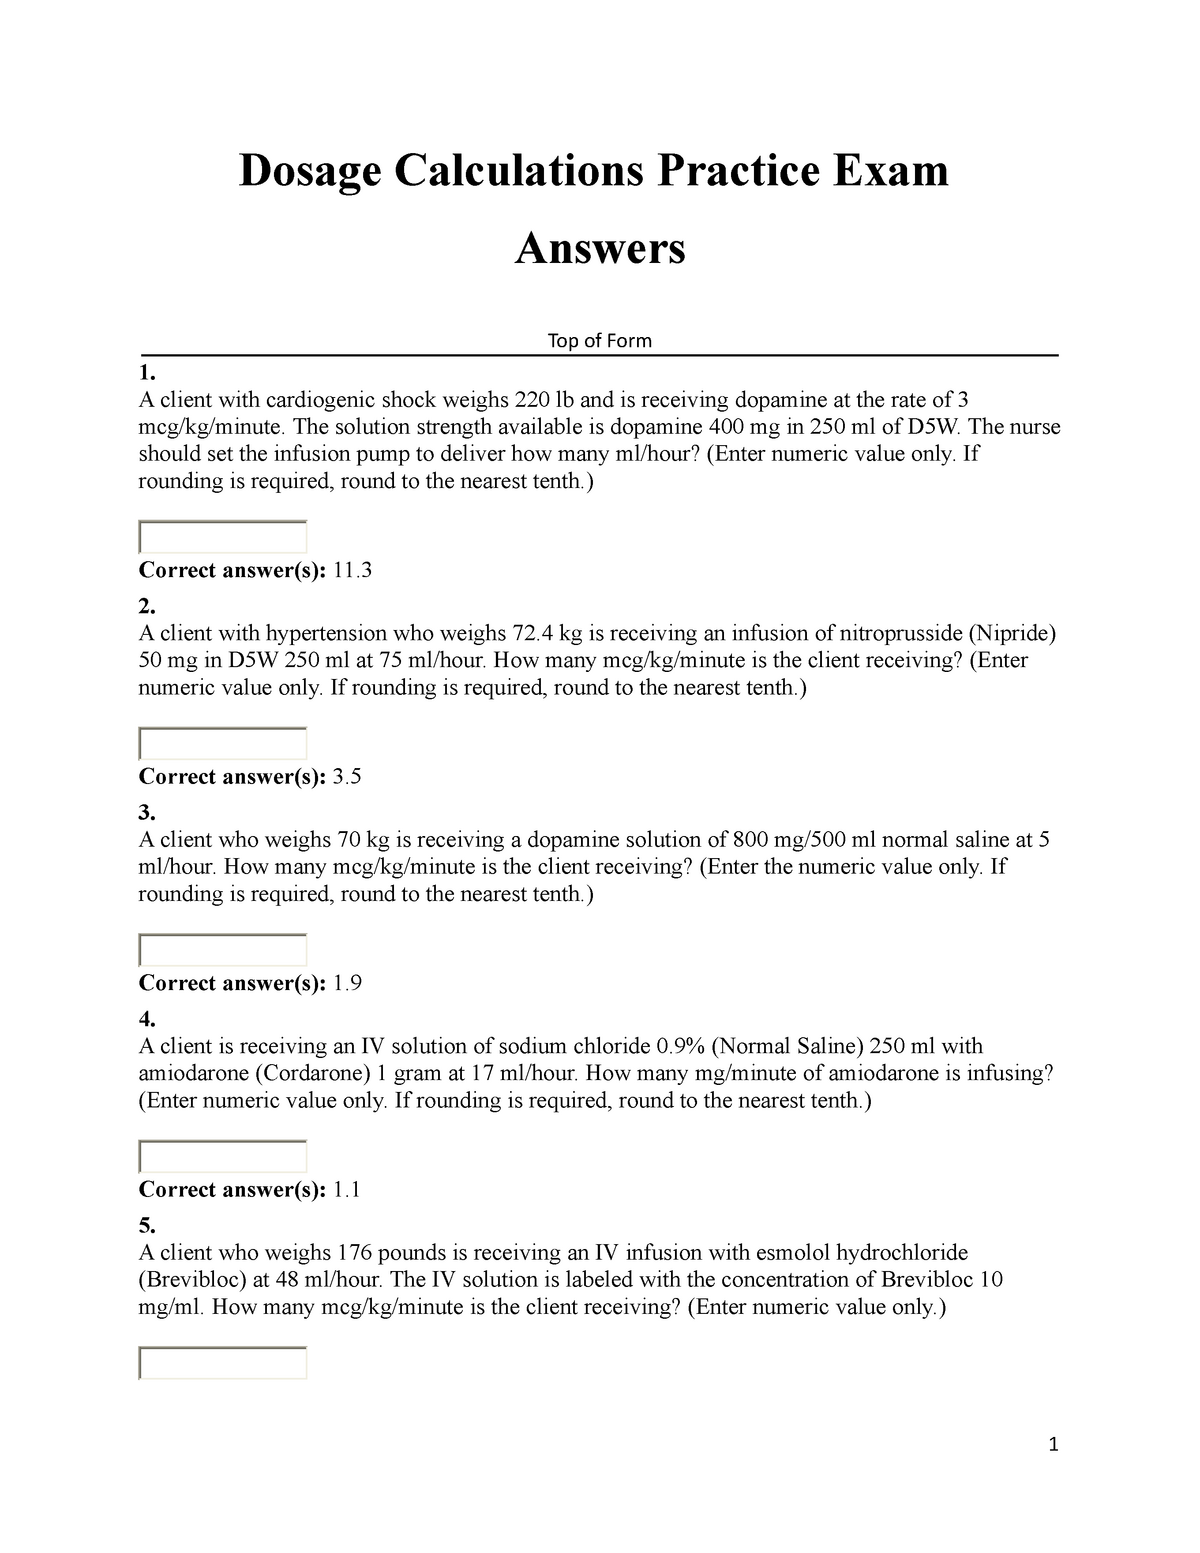 Dosage Calculations Practice Exam Answers - Mathematics